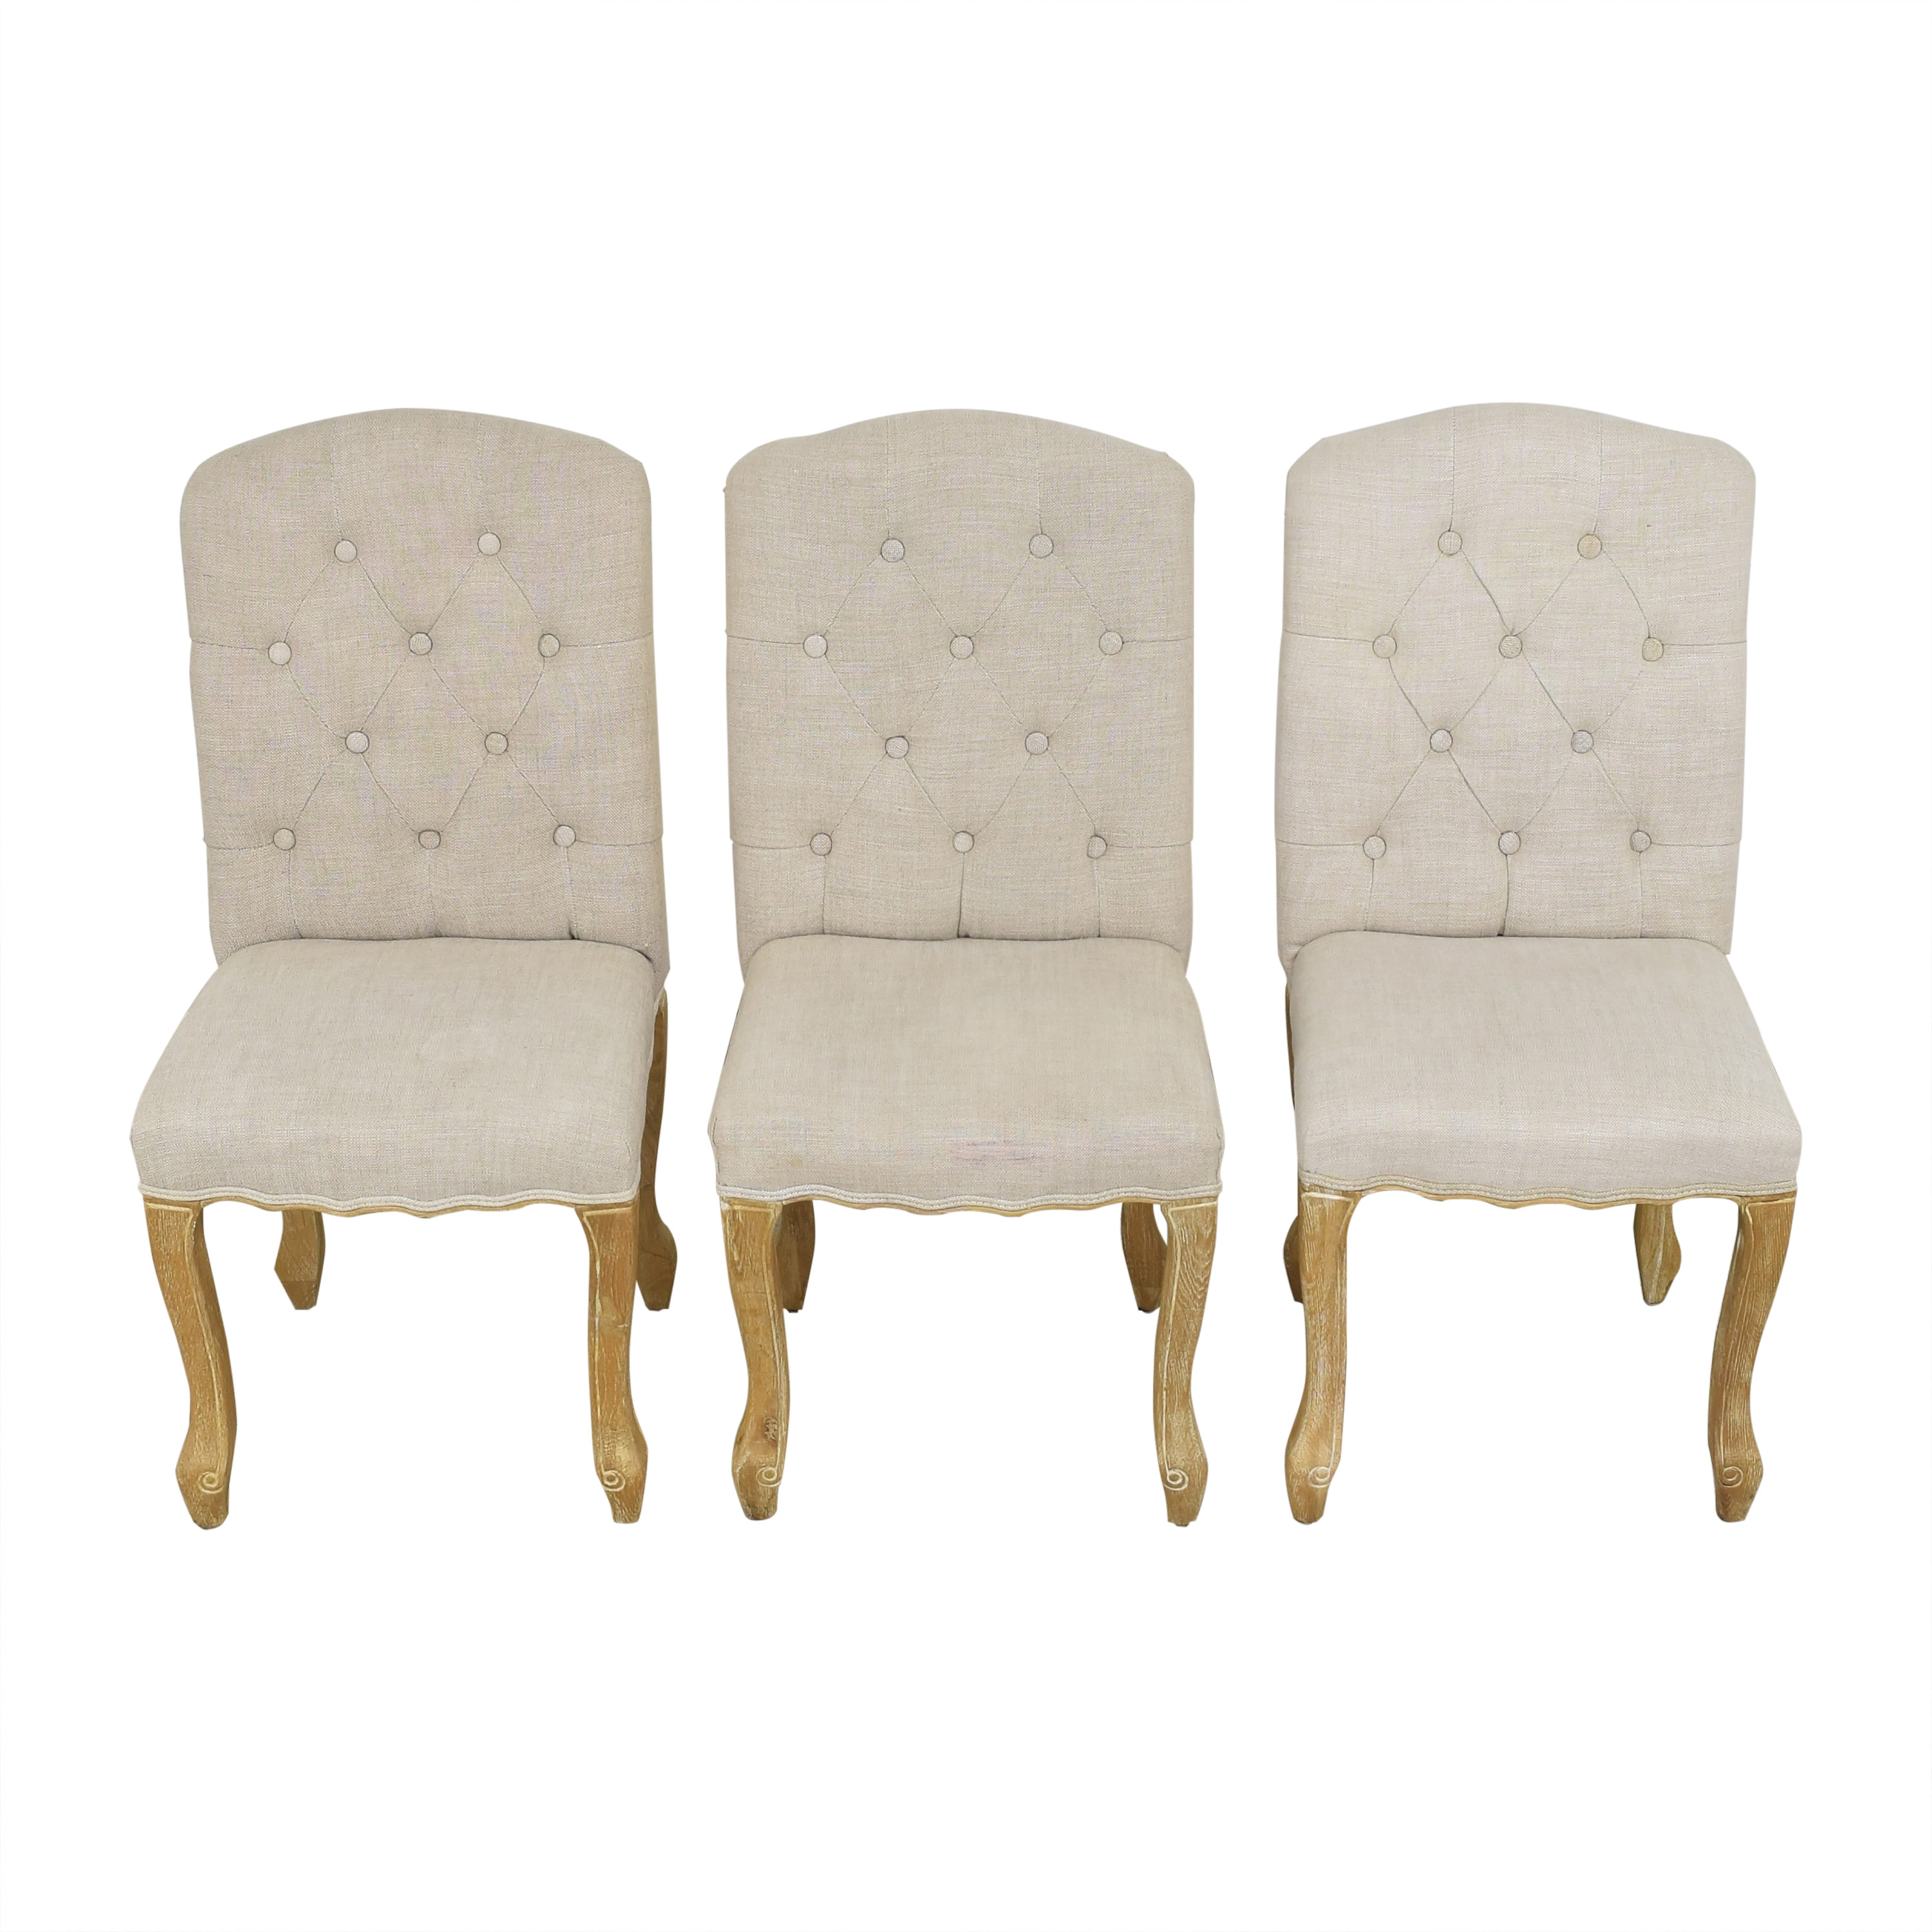 Zuo Modern Zuo Modern Noe Valley Chairs for sale